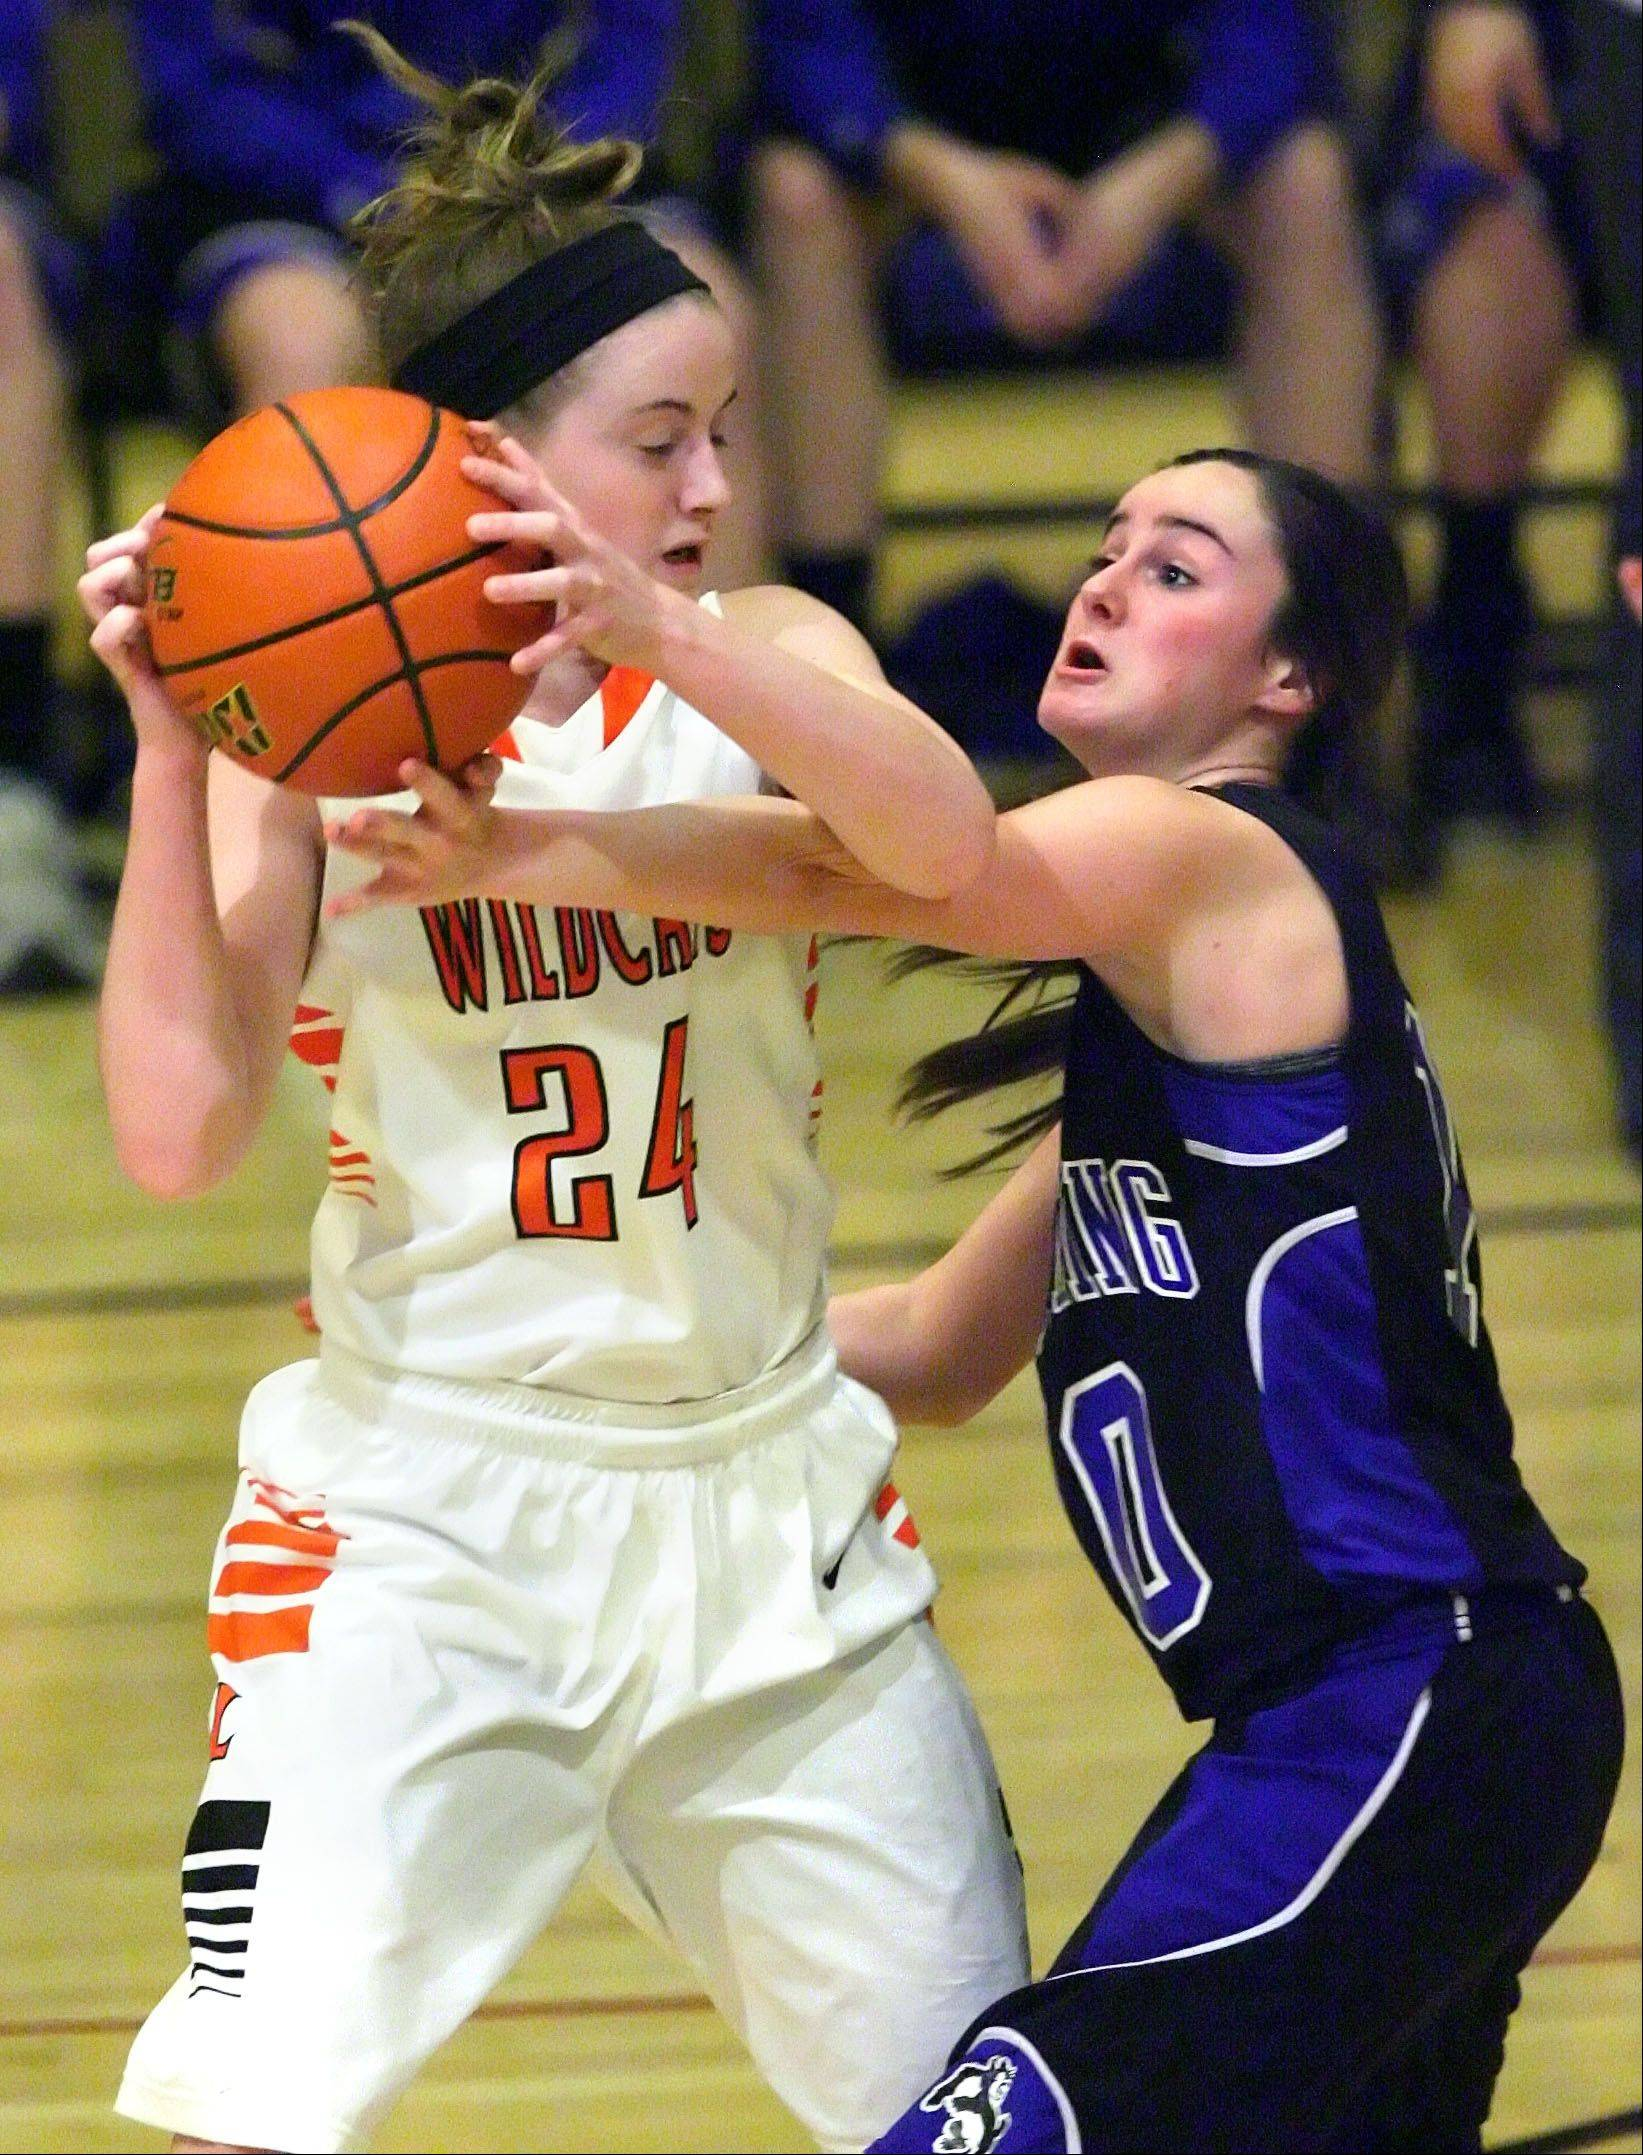 Libertyville's Rosie Lynch and Wheeling's Gianna Calistro battle for the ball.